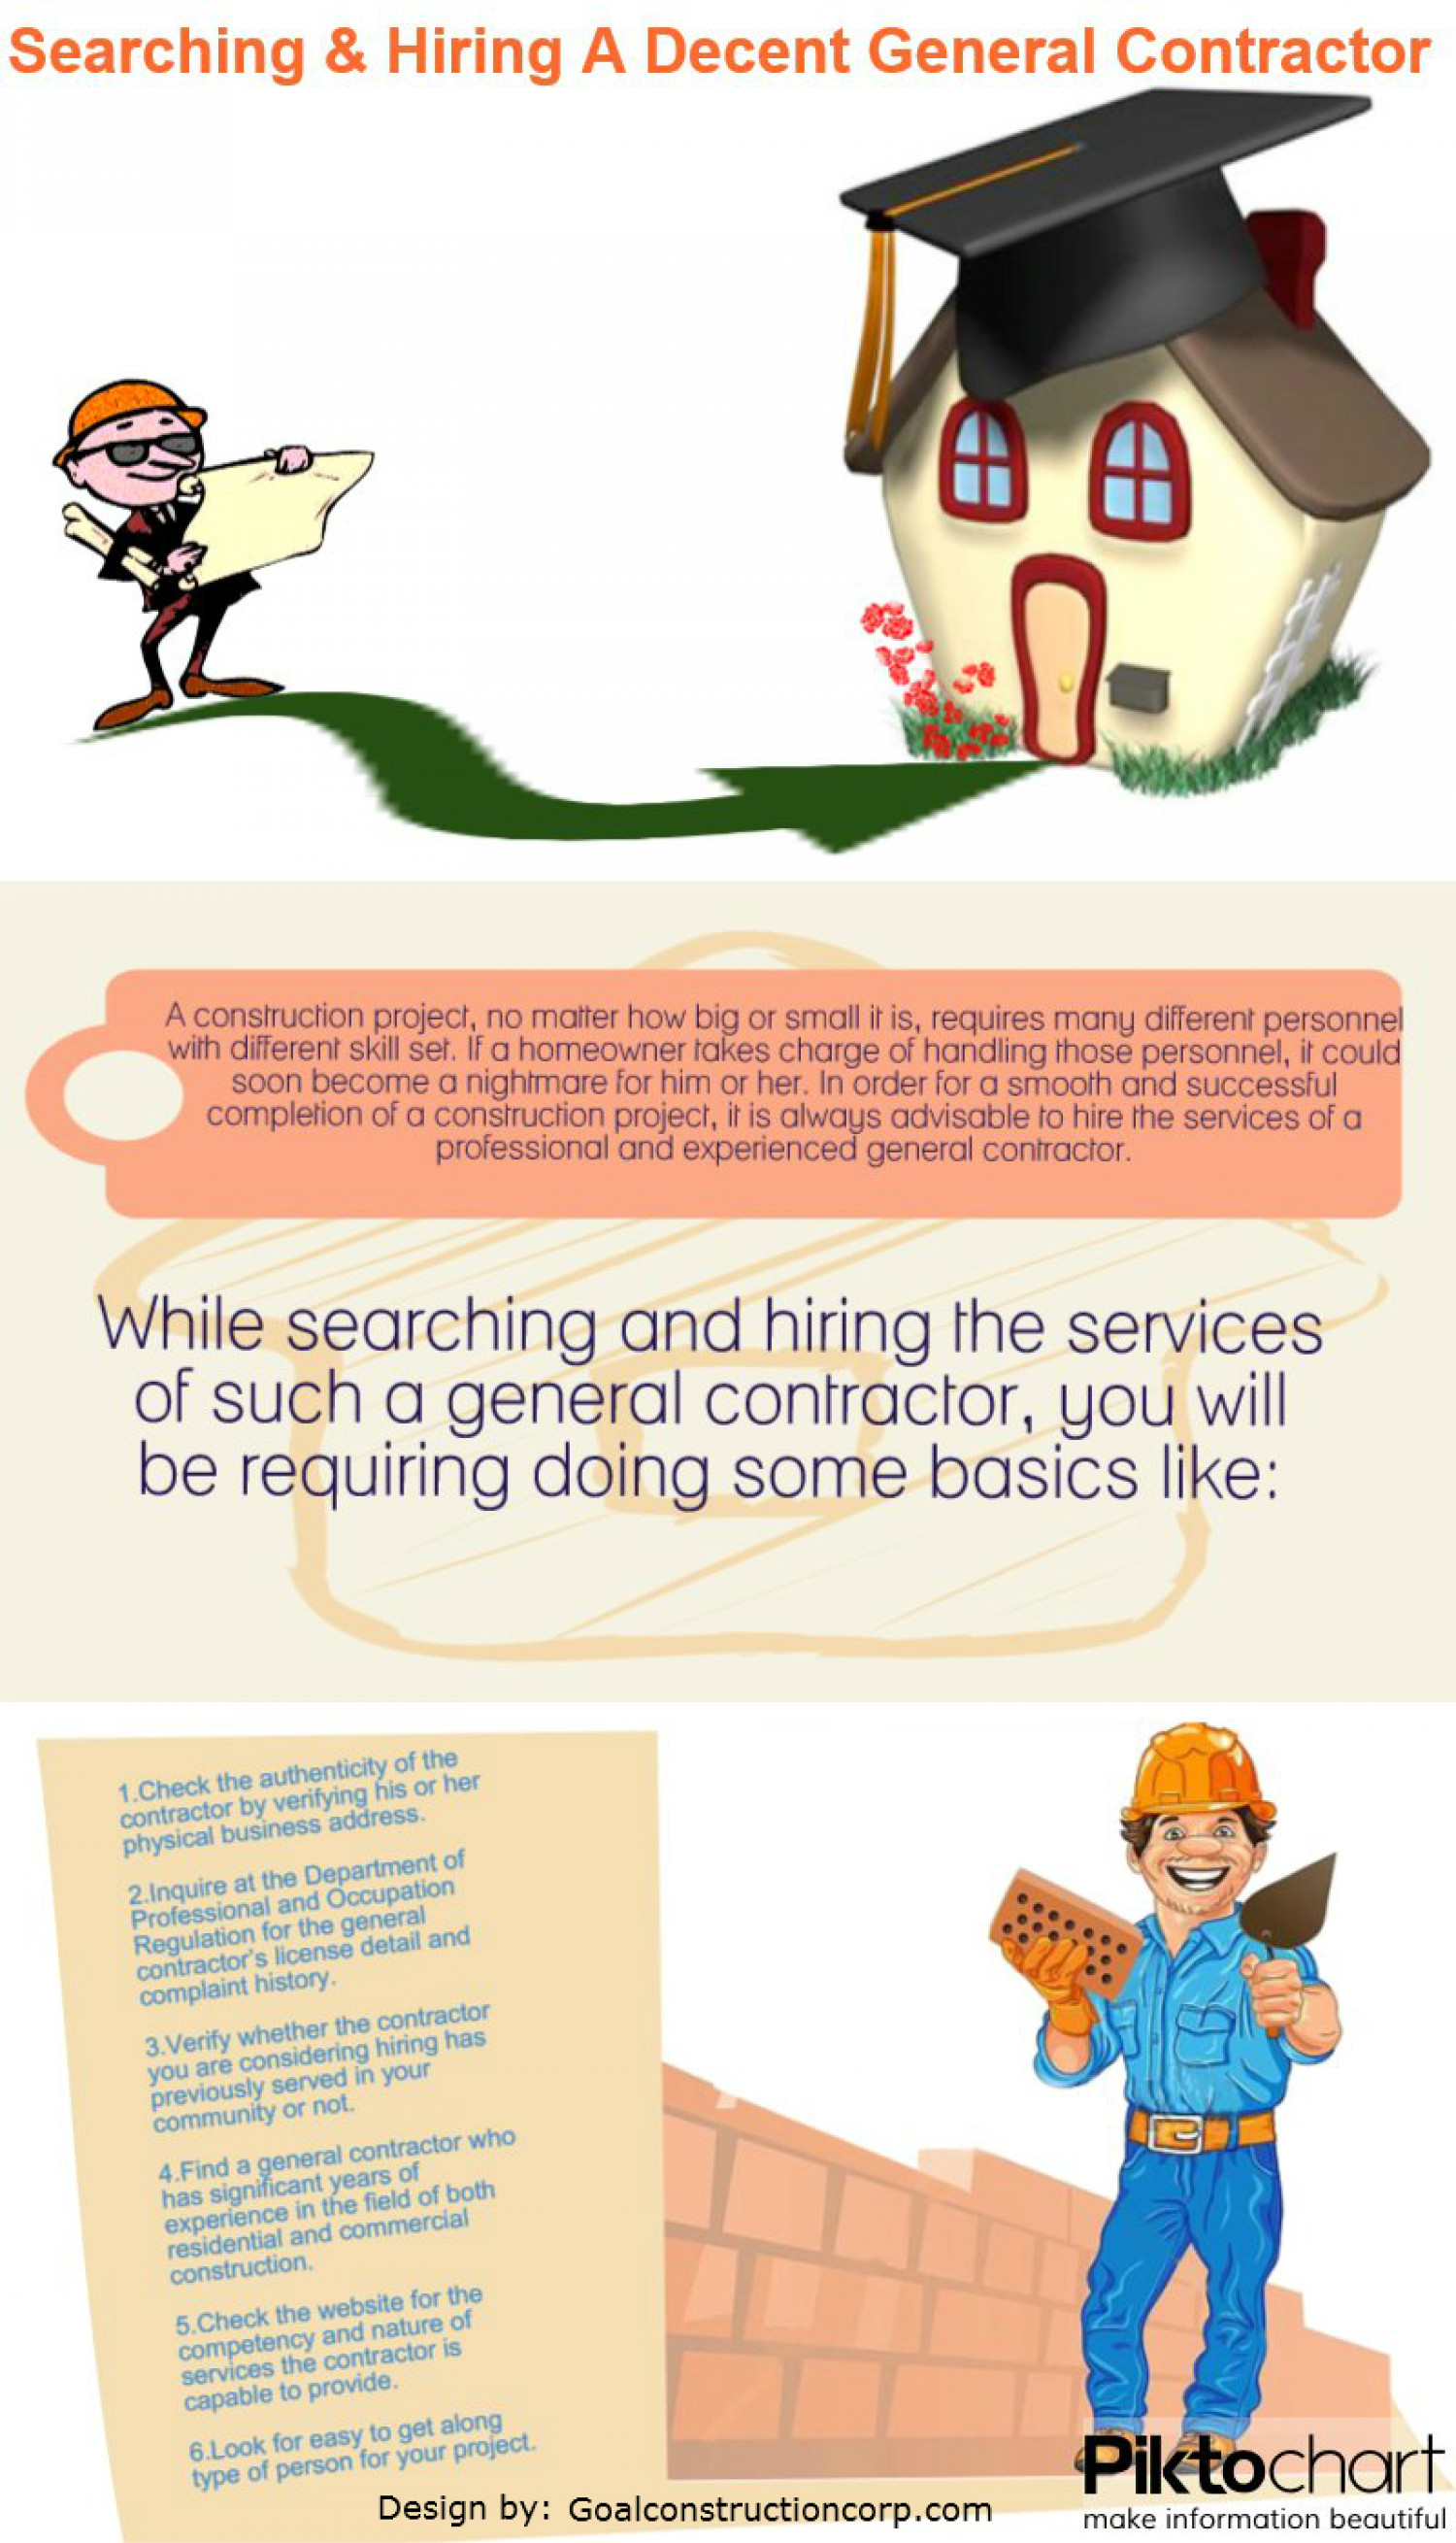 Superbe Hiring A Decent General Contractor Infographic